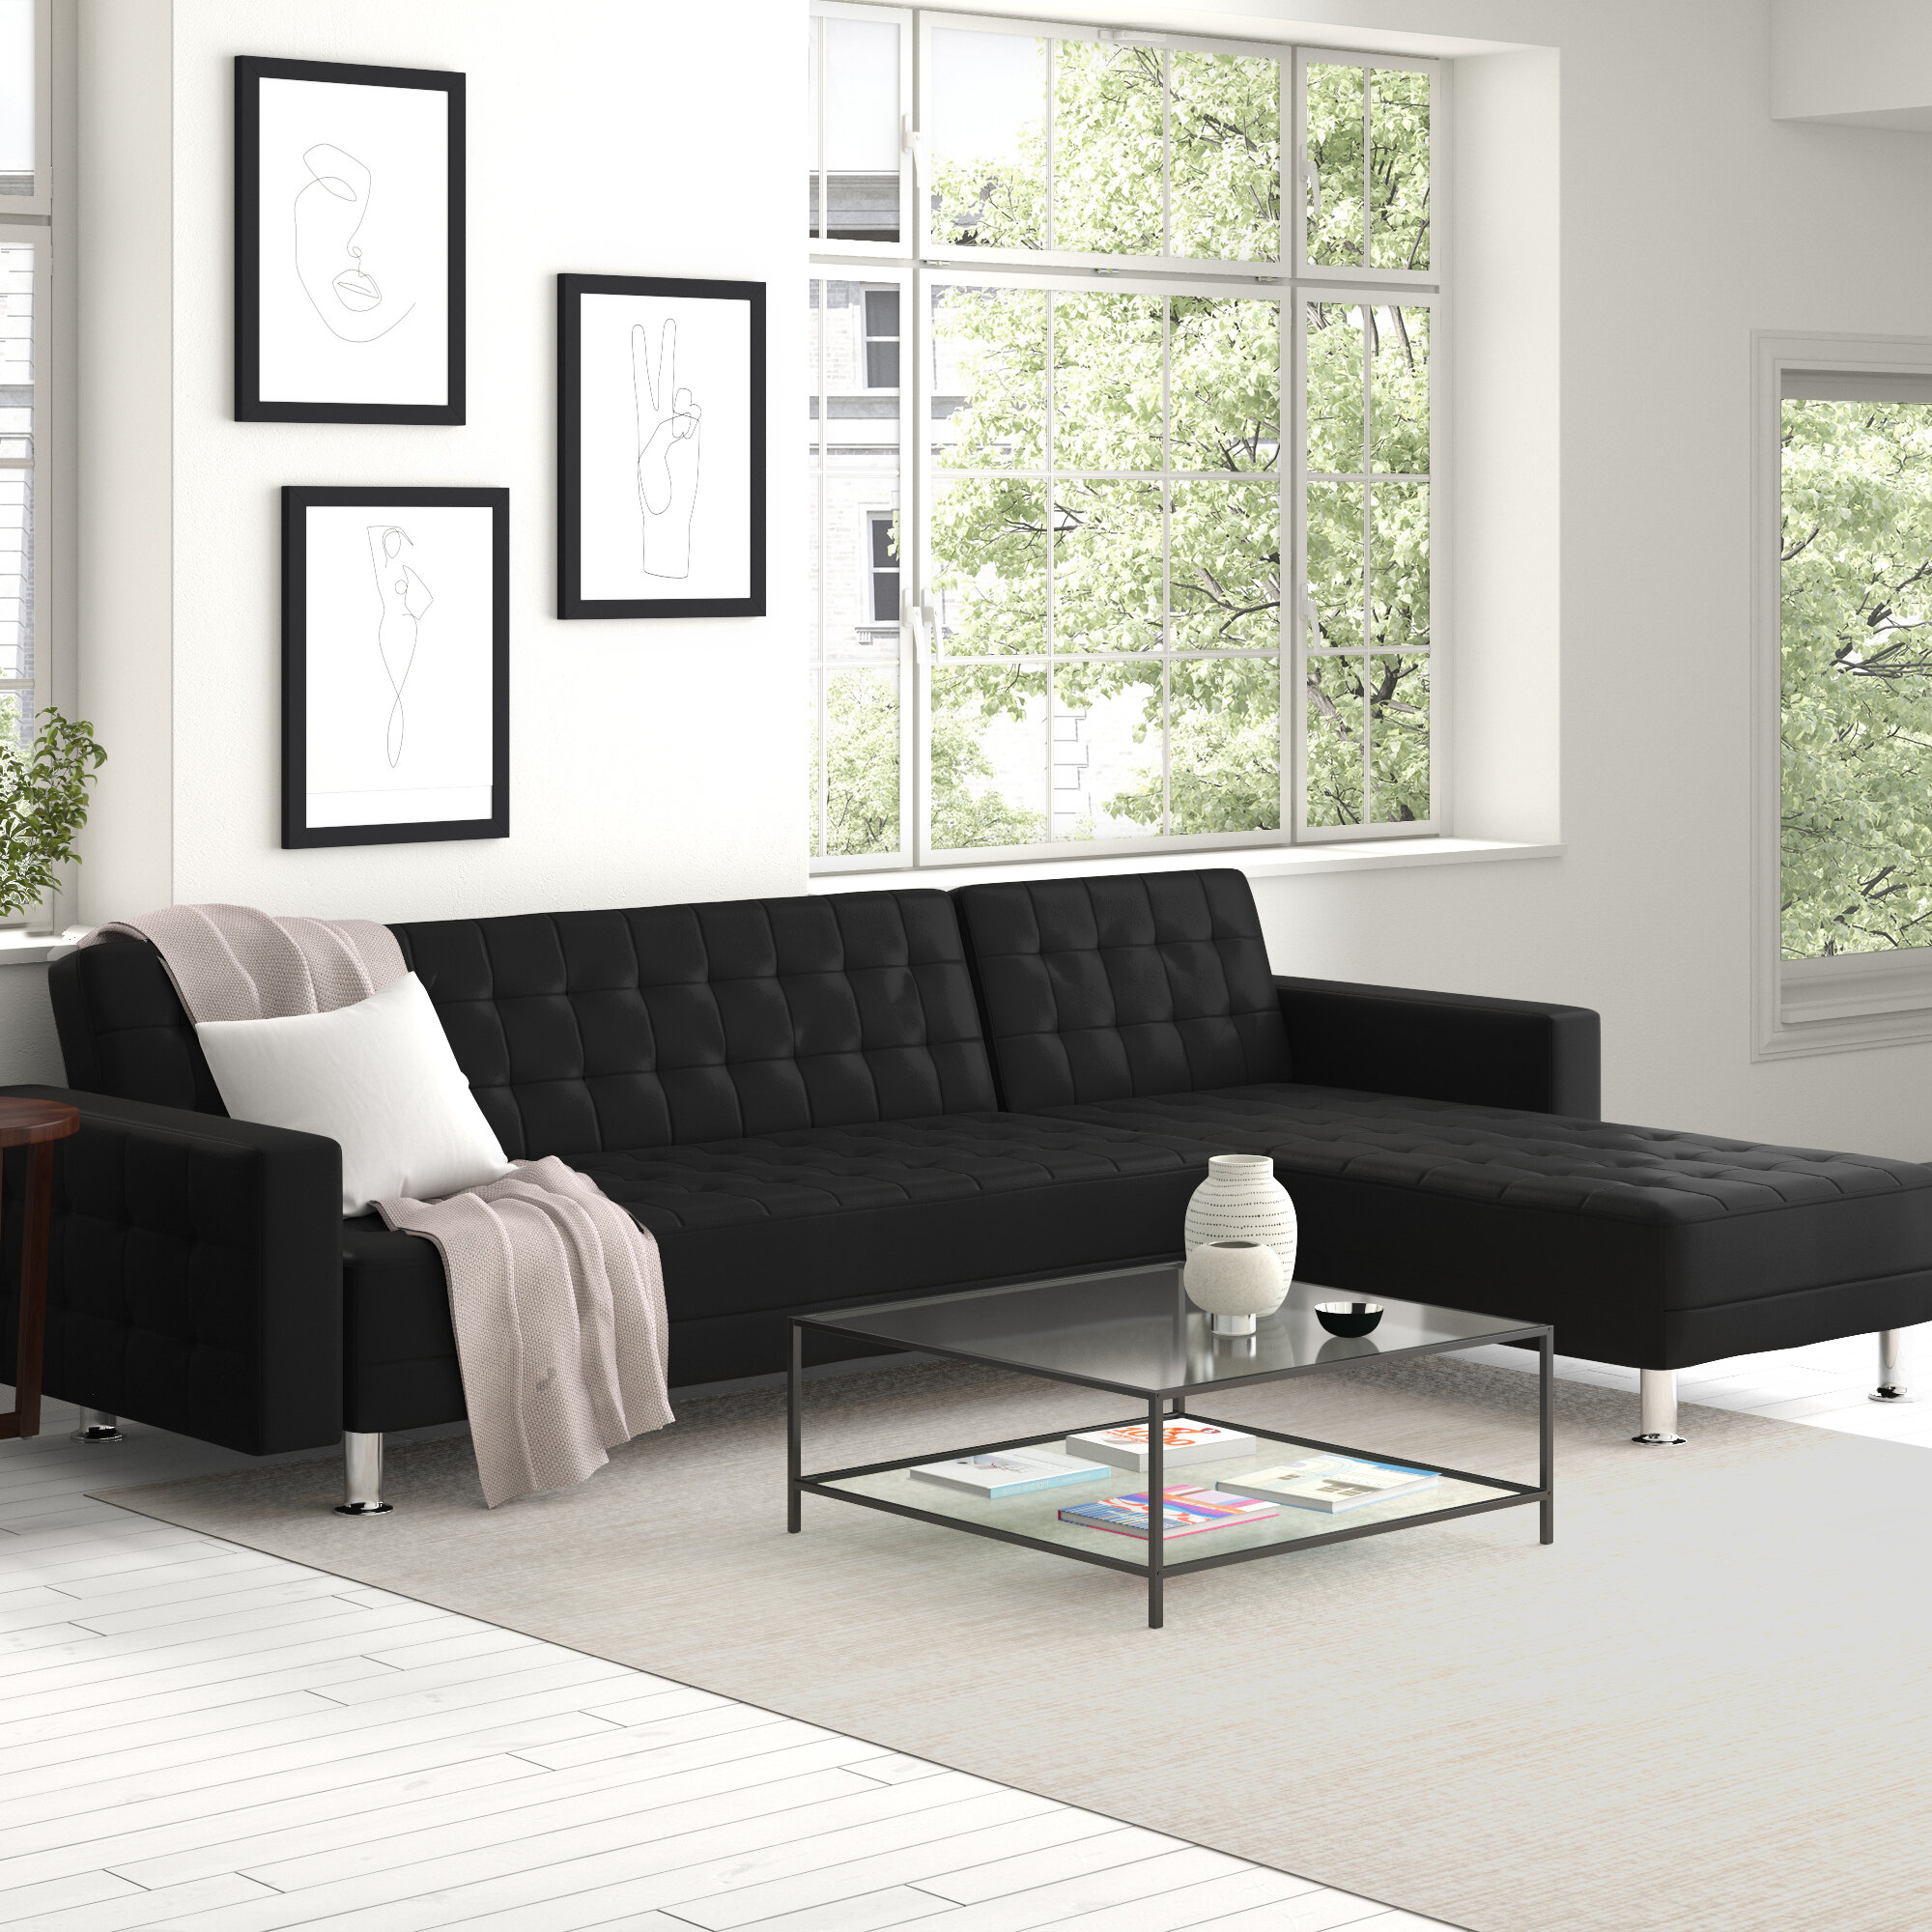 Zipcode Design Rosina 118 12 Wide Faux Leather Reversible Sofa And Chaise Reviews Wayfair